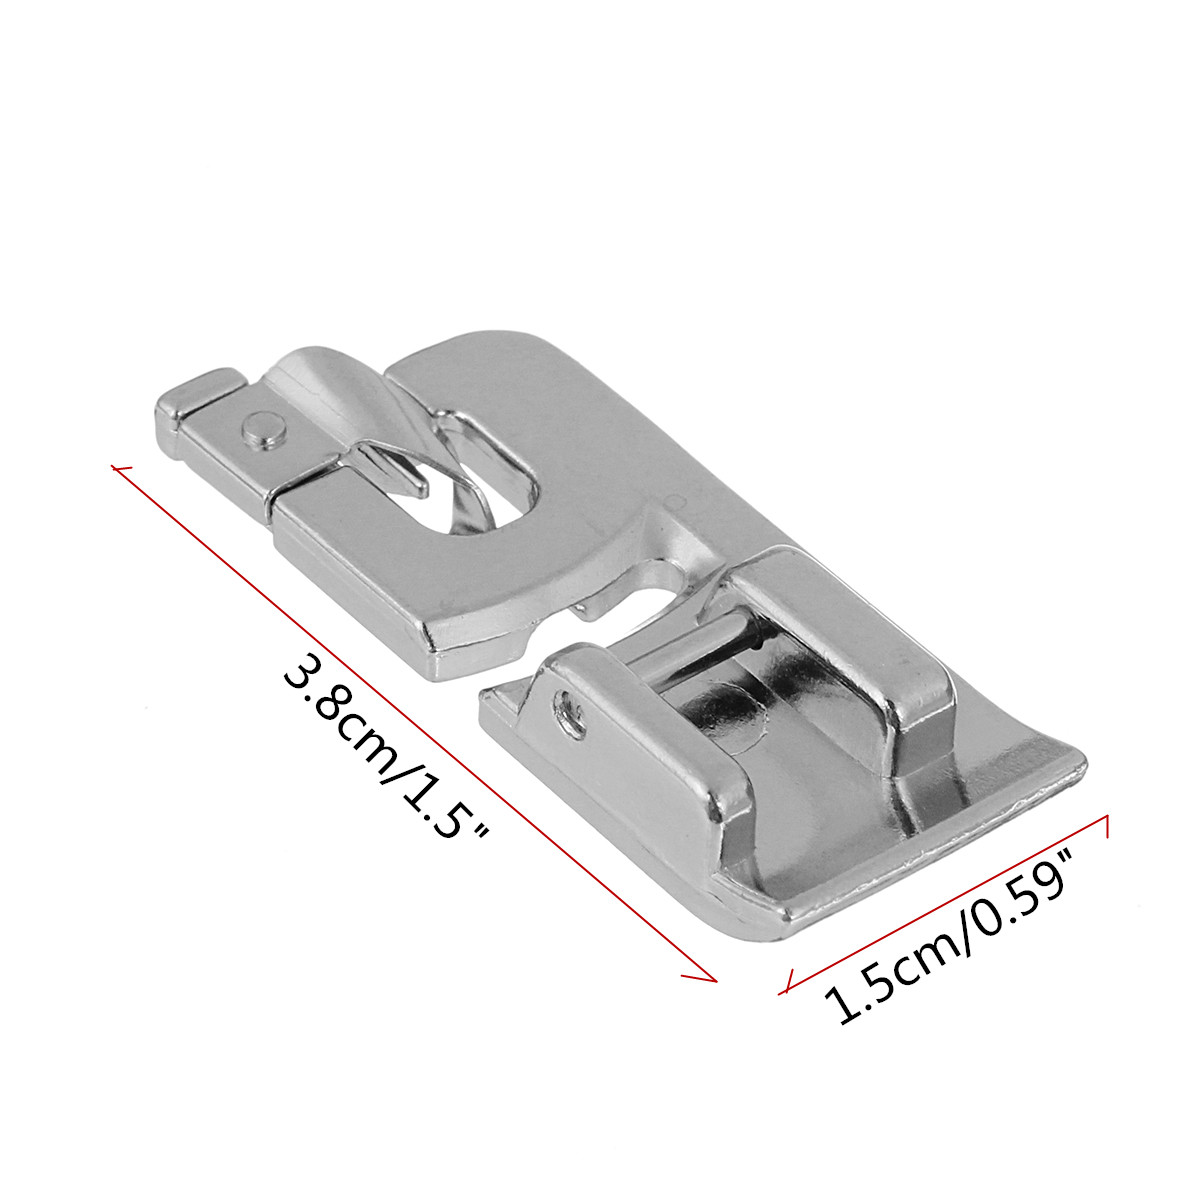 6mm Rolled Hem Foot Presser for Brother Singer Domestic Sewing Machine